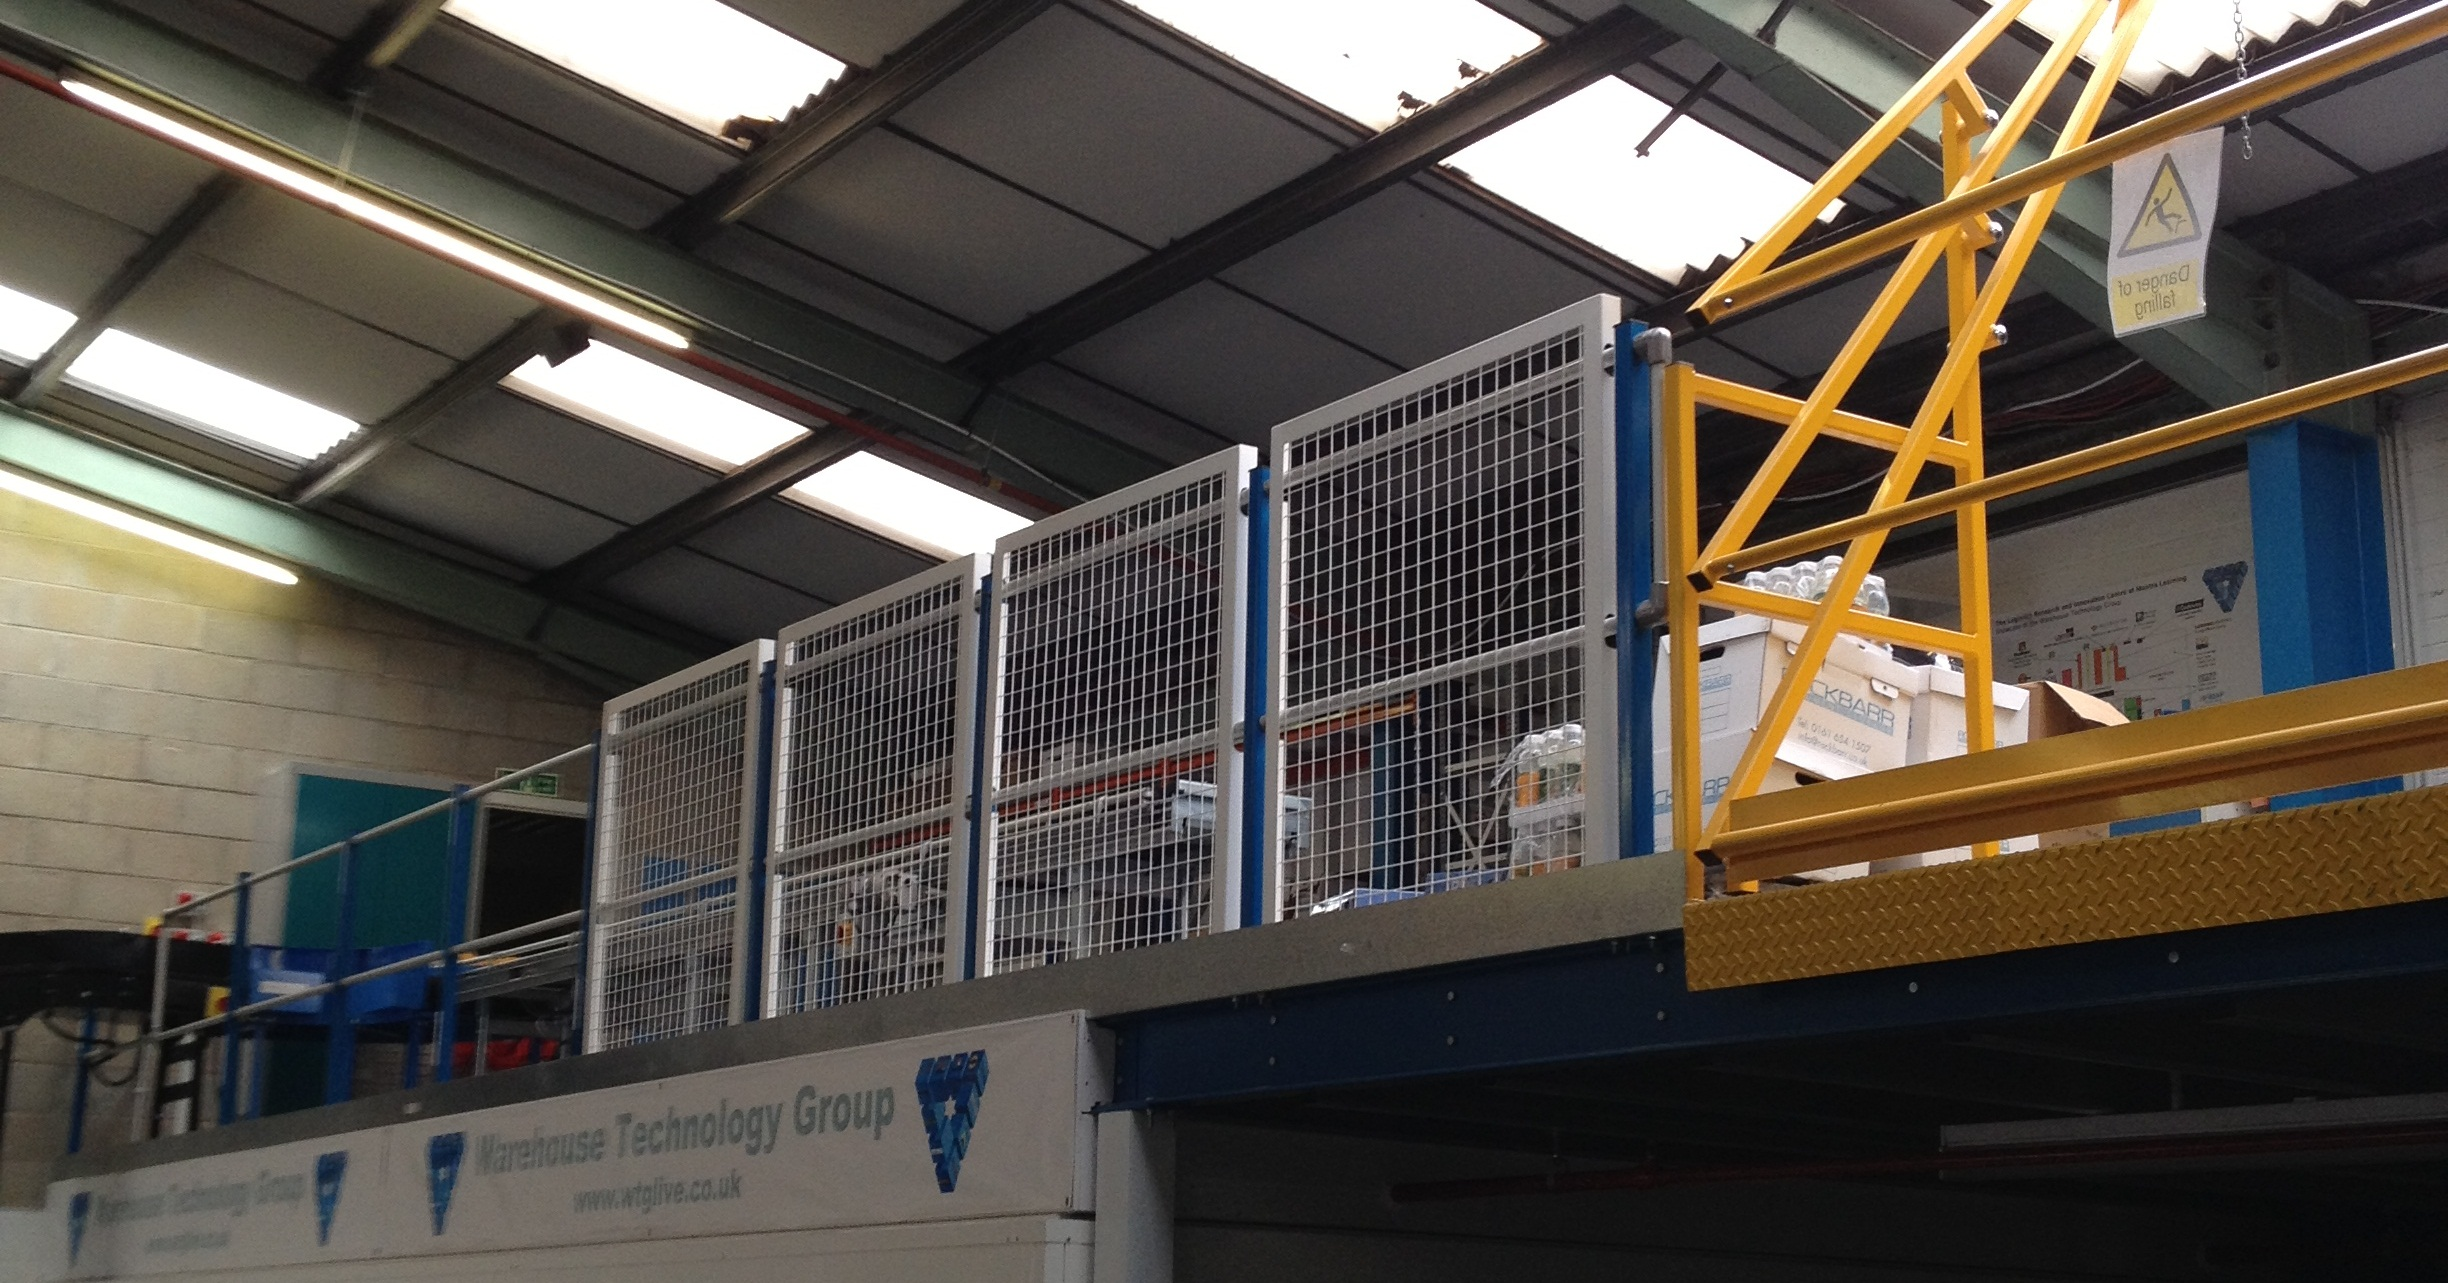 Mezzanine floor installed for Warehouse technology group